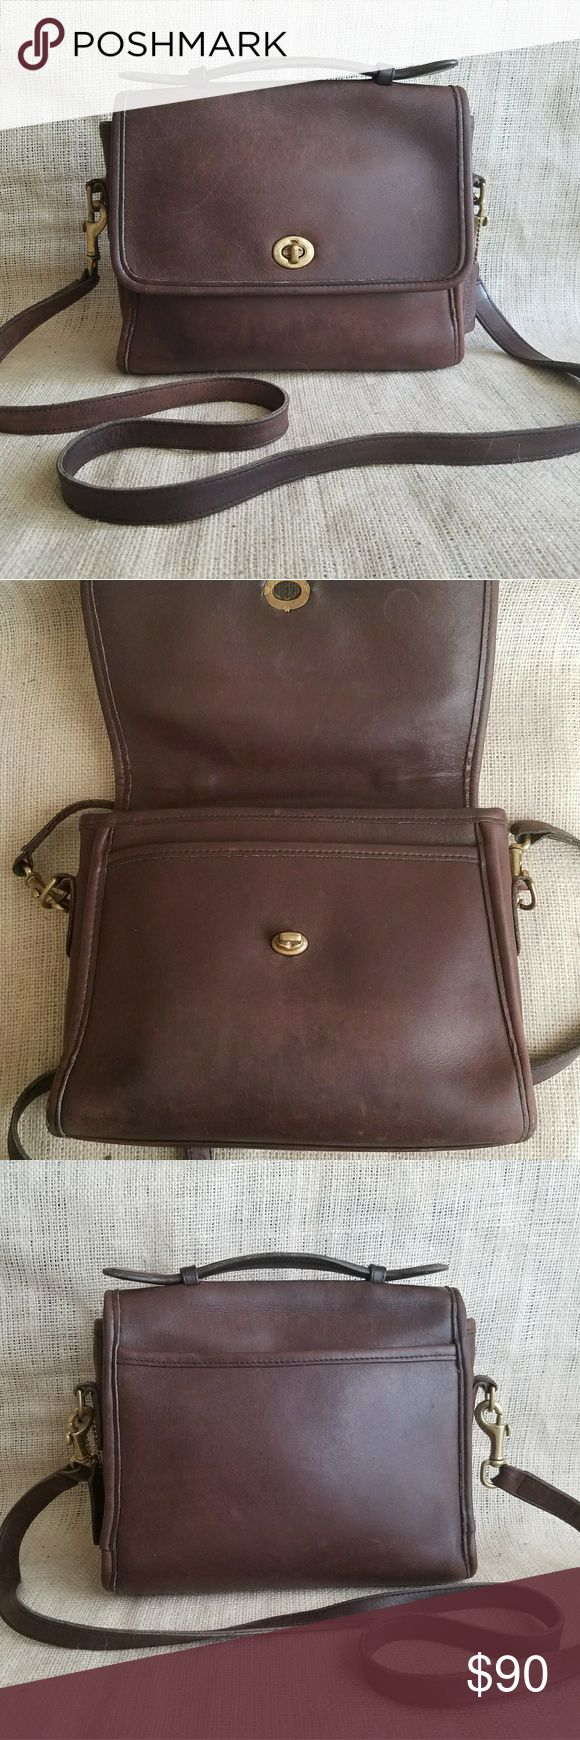 """Vintage Coach Court Crossbody Brown Leather Bag Beautiful vintage chocolate brown Coach bag in the classic Court model. The bag has wear consistent with age. I love leather that's been lived in, tells such a story! I have conditioned this bag & the color is lovely.  One main area & one small zip pocket inside. Slip pocket on back. Hang tag included. Pic shows a wear-through on bottom left piping.  Serial number is J5C 9870. Made in USA.  9.5"""" wide 8"""" tall 3.5"""" deep with a strap drop of 21""""…"""